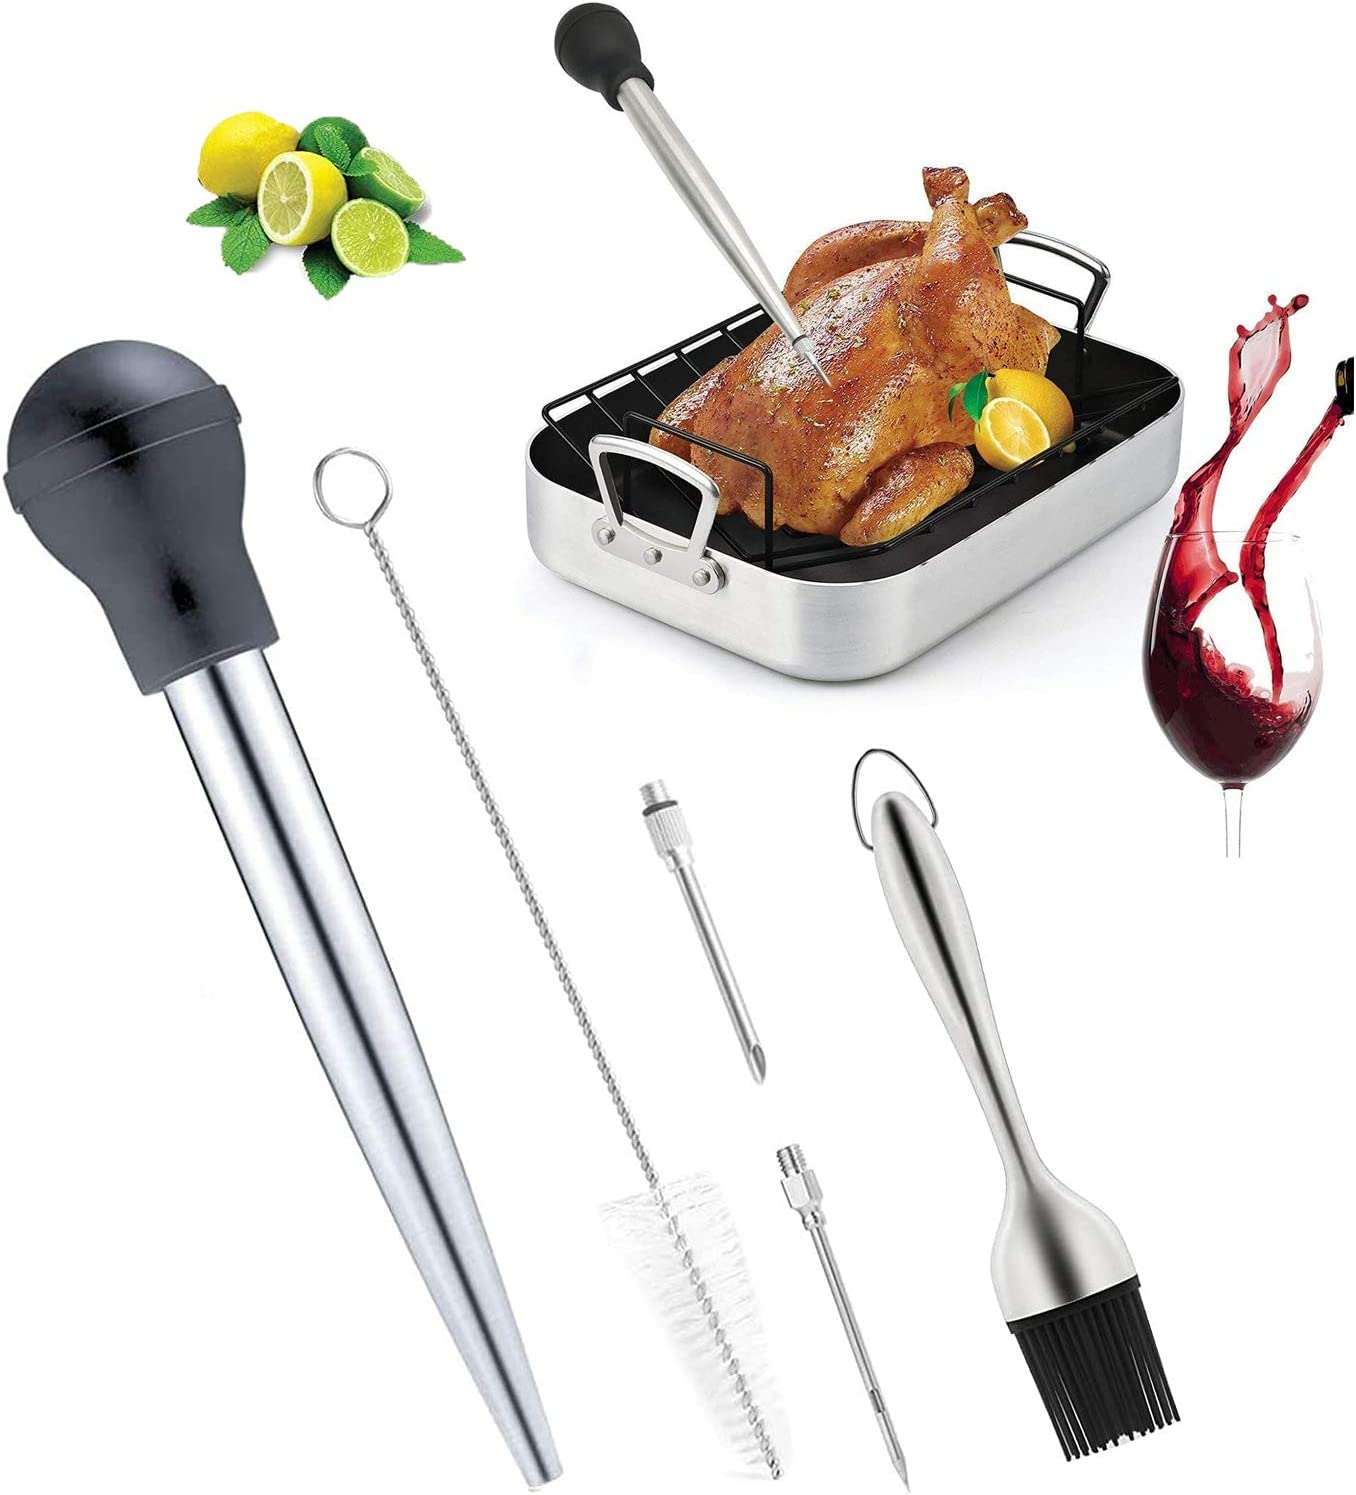 Turkey Cooking Set Tampa Mall Stainless Baster Barbecue with Tulsa Mall I 2 Kit Tool